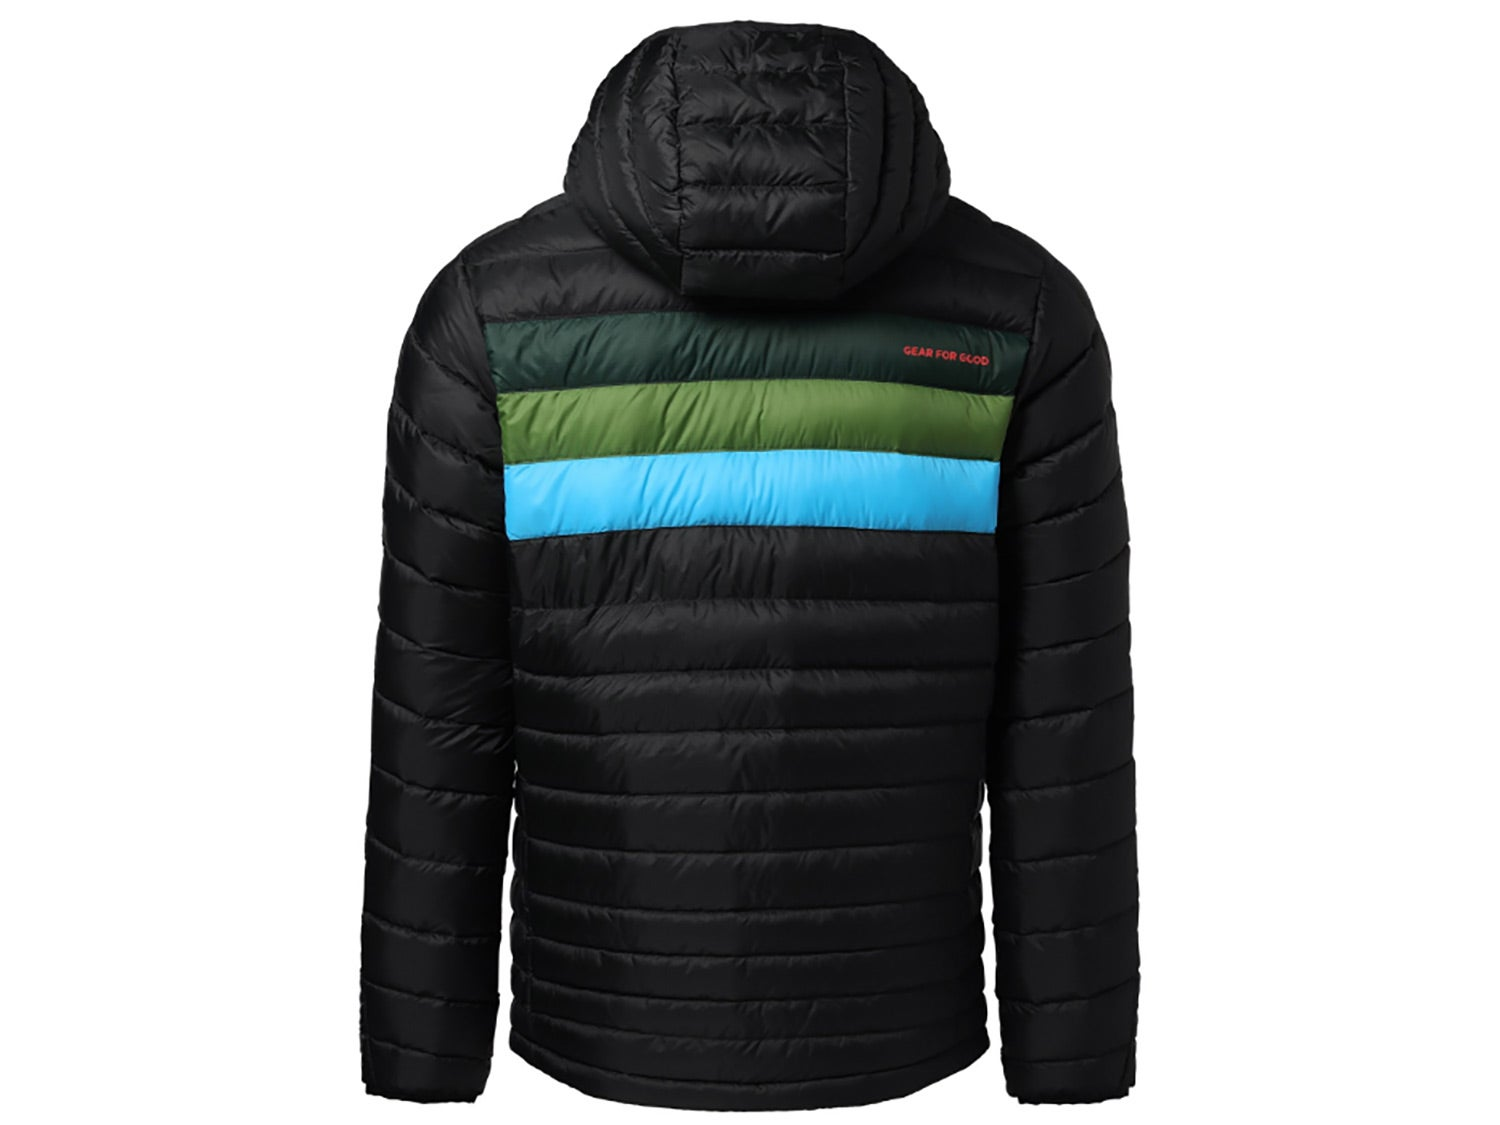 Cotopaxi Fuego Hooded Down Jacket is one of the best down puffer jackets.